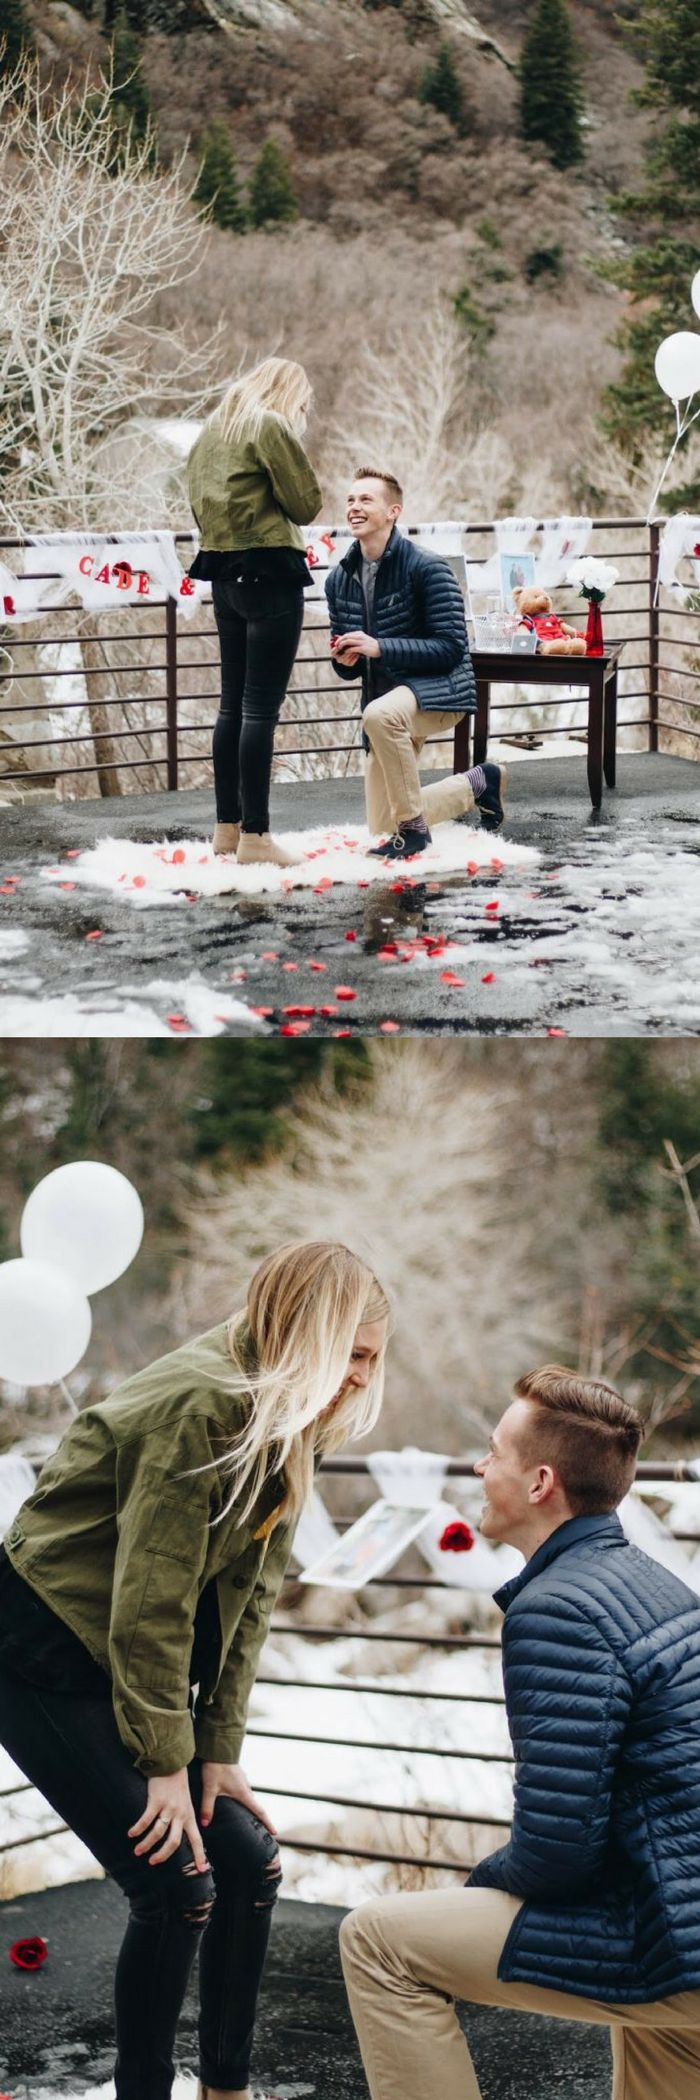 He made the most beautiful and sentimental setup with photos from their relationship, then he asked her to marry him!